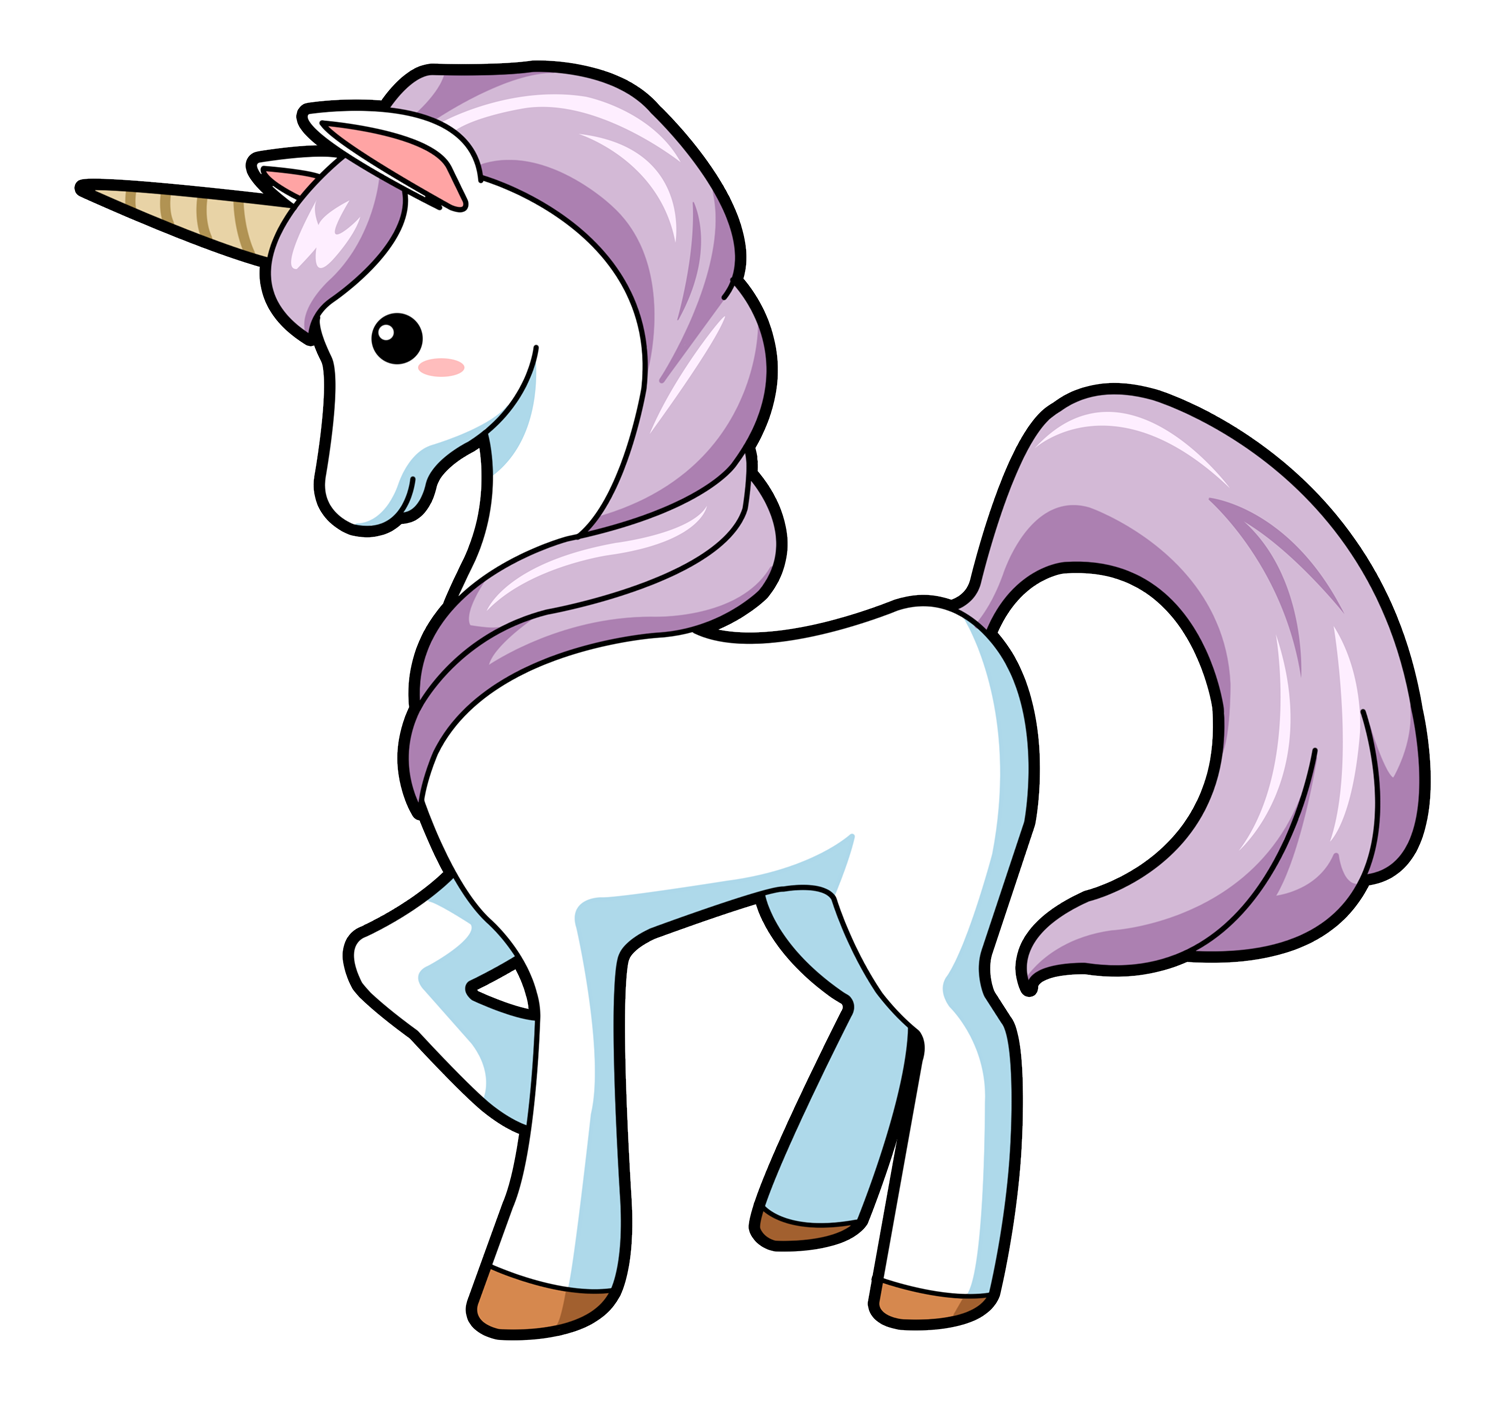 nicorn clipart kawaii